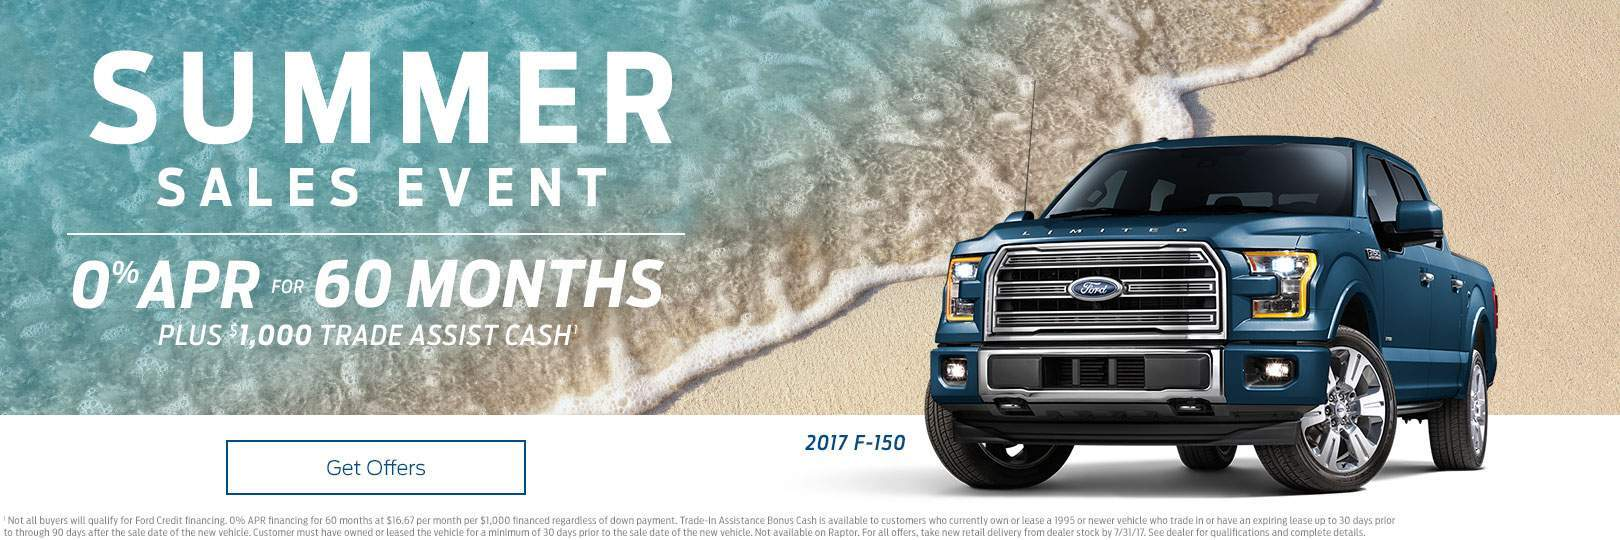 ford f-150 sales event